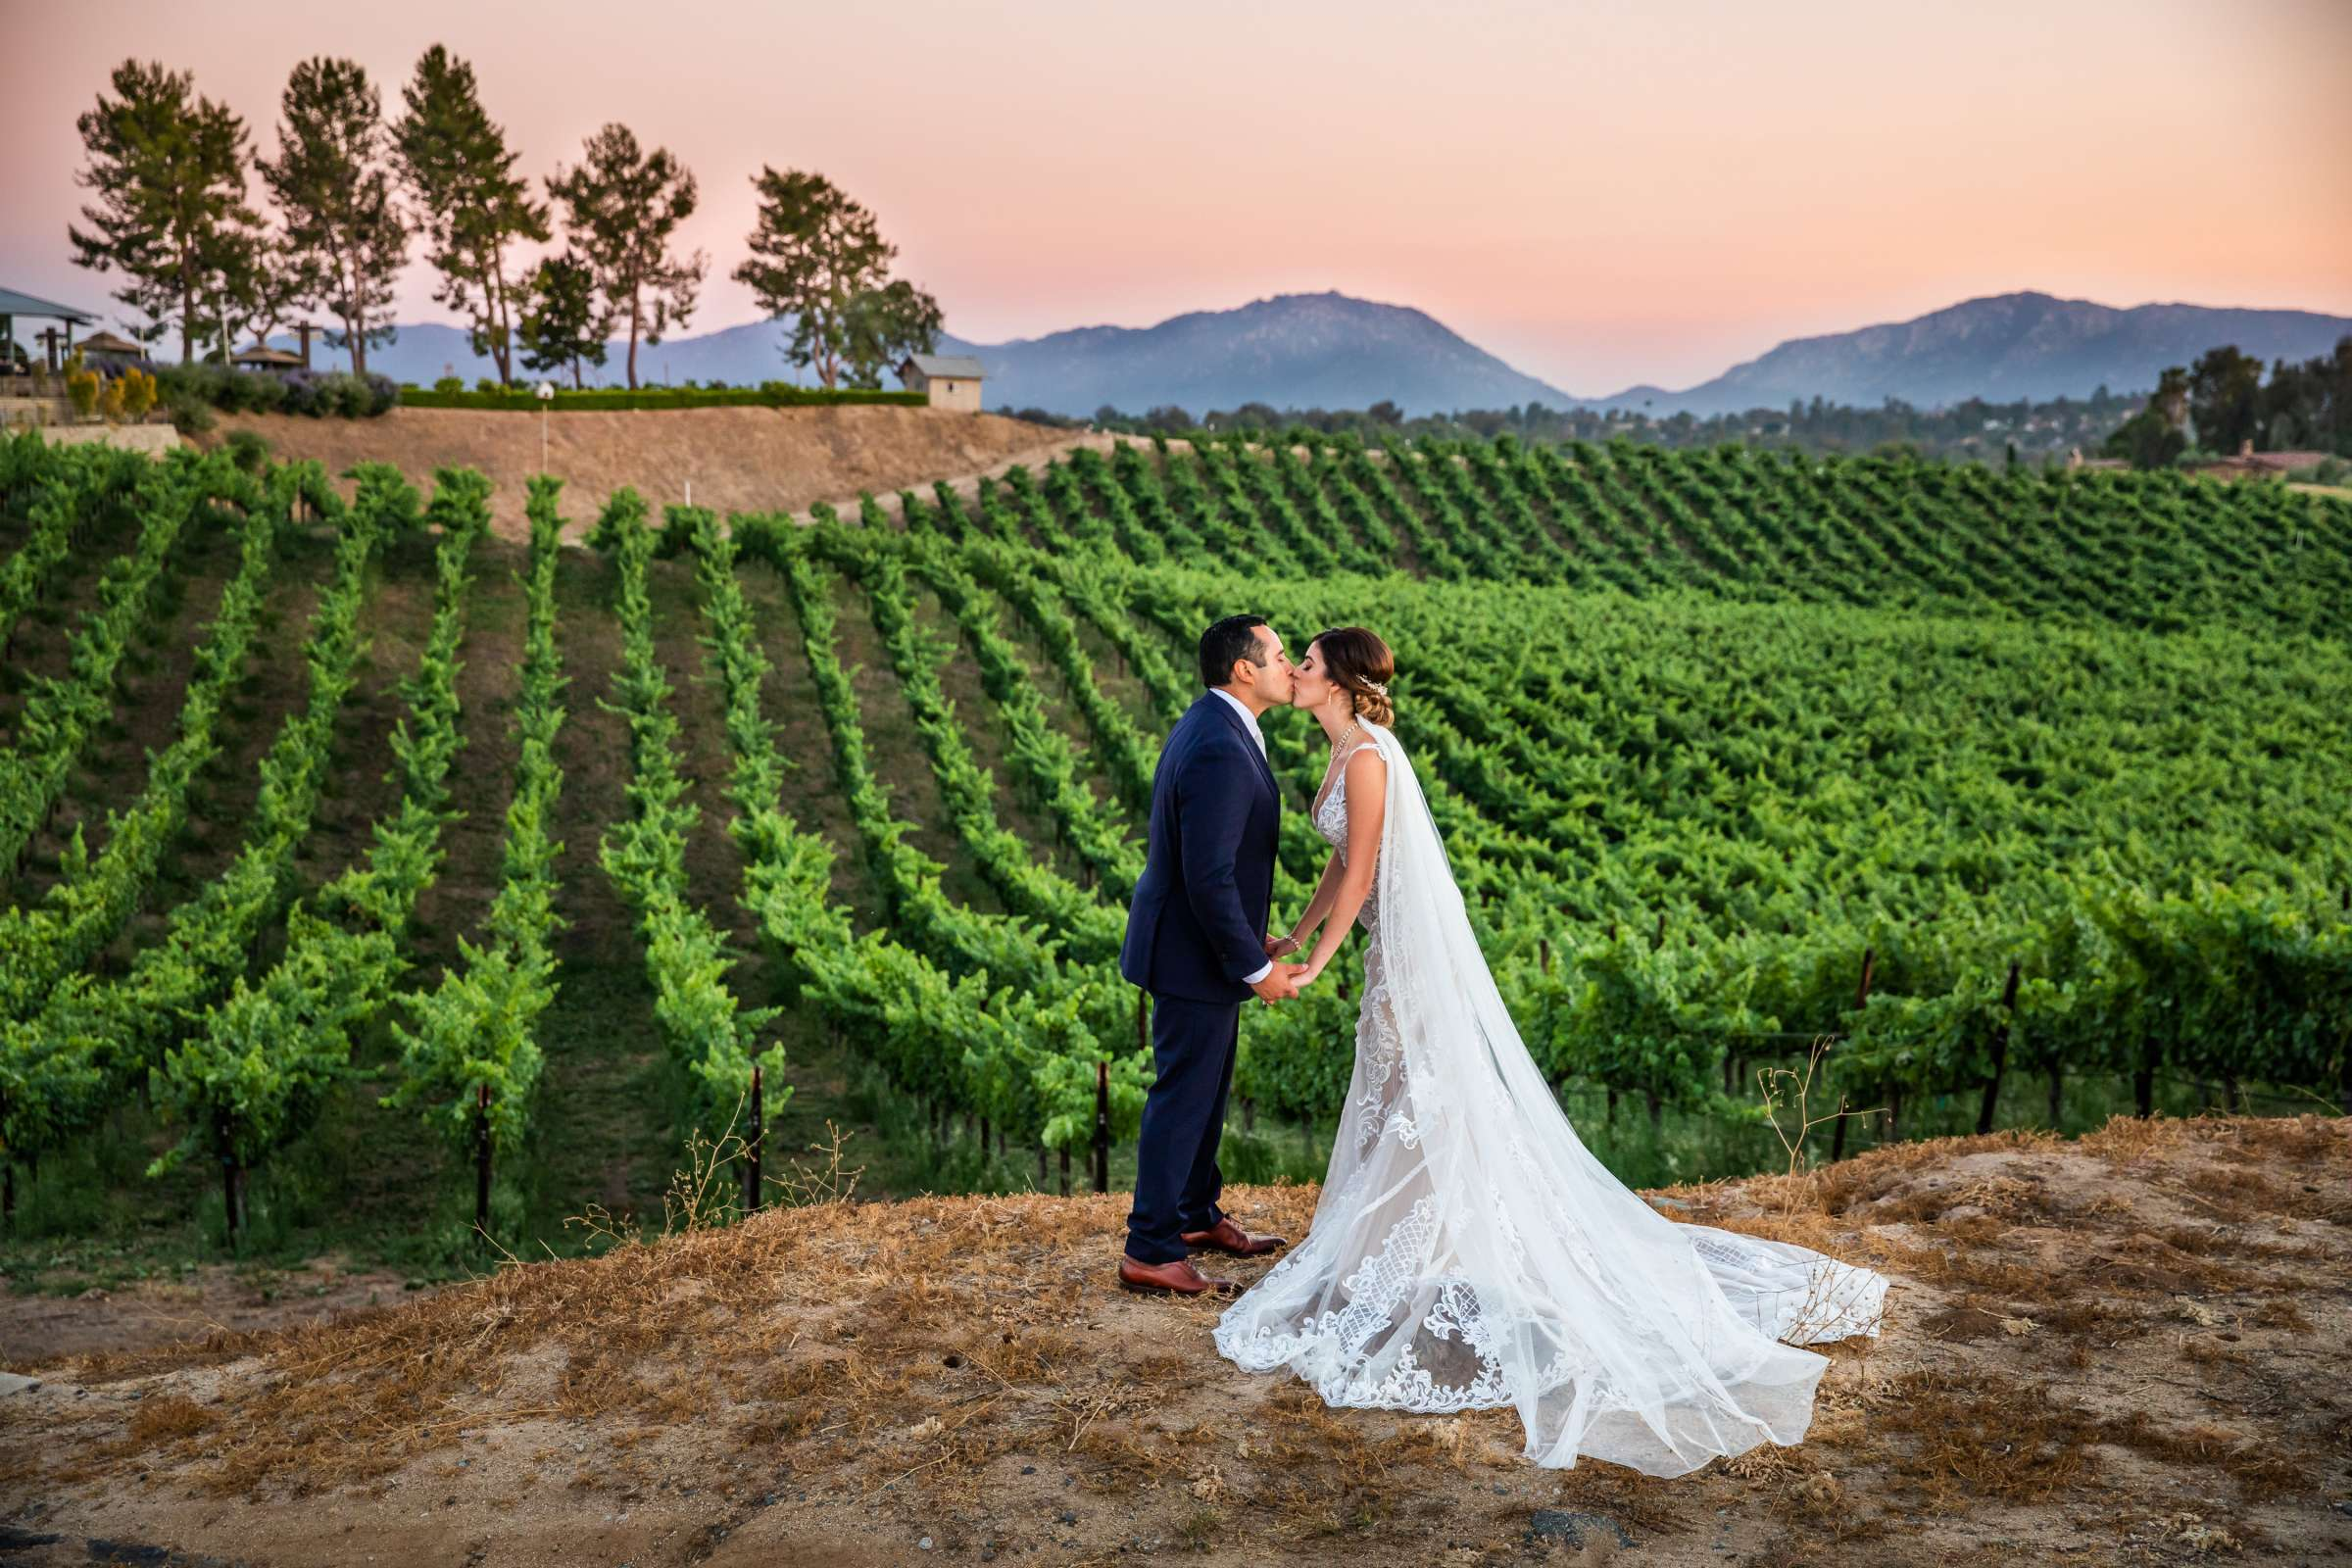 Winery at Callaway Vineyards & Winery Wedding coordinated by Michelle Garibay Events, Chelsea and Luis carlos Wedding Photo #1 by True Photography